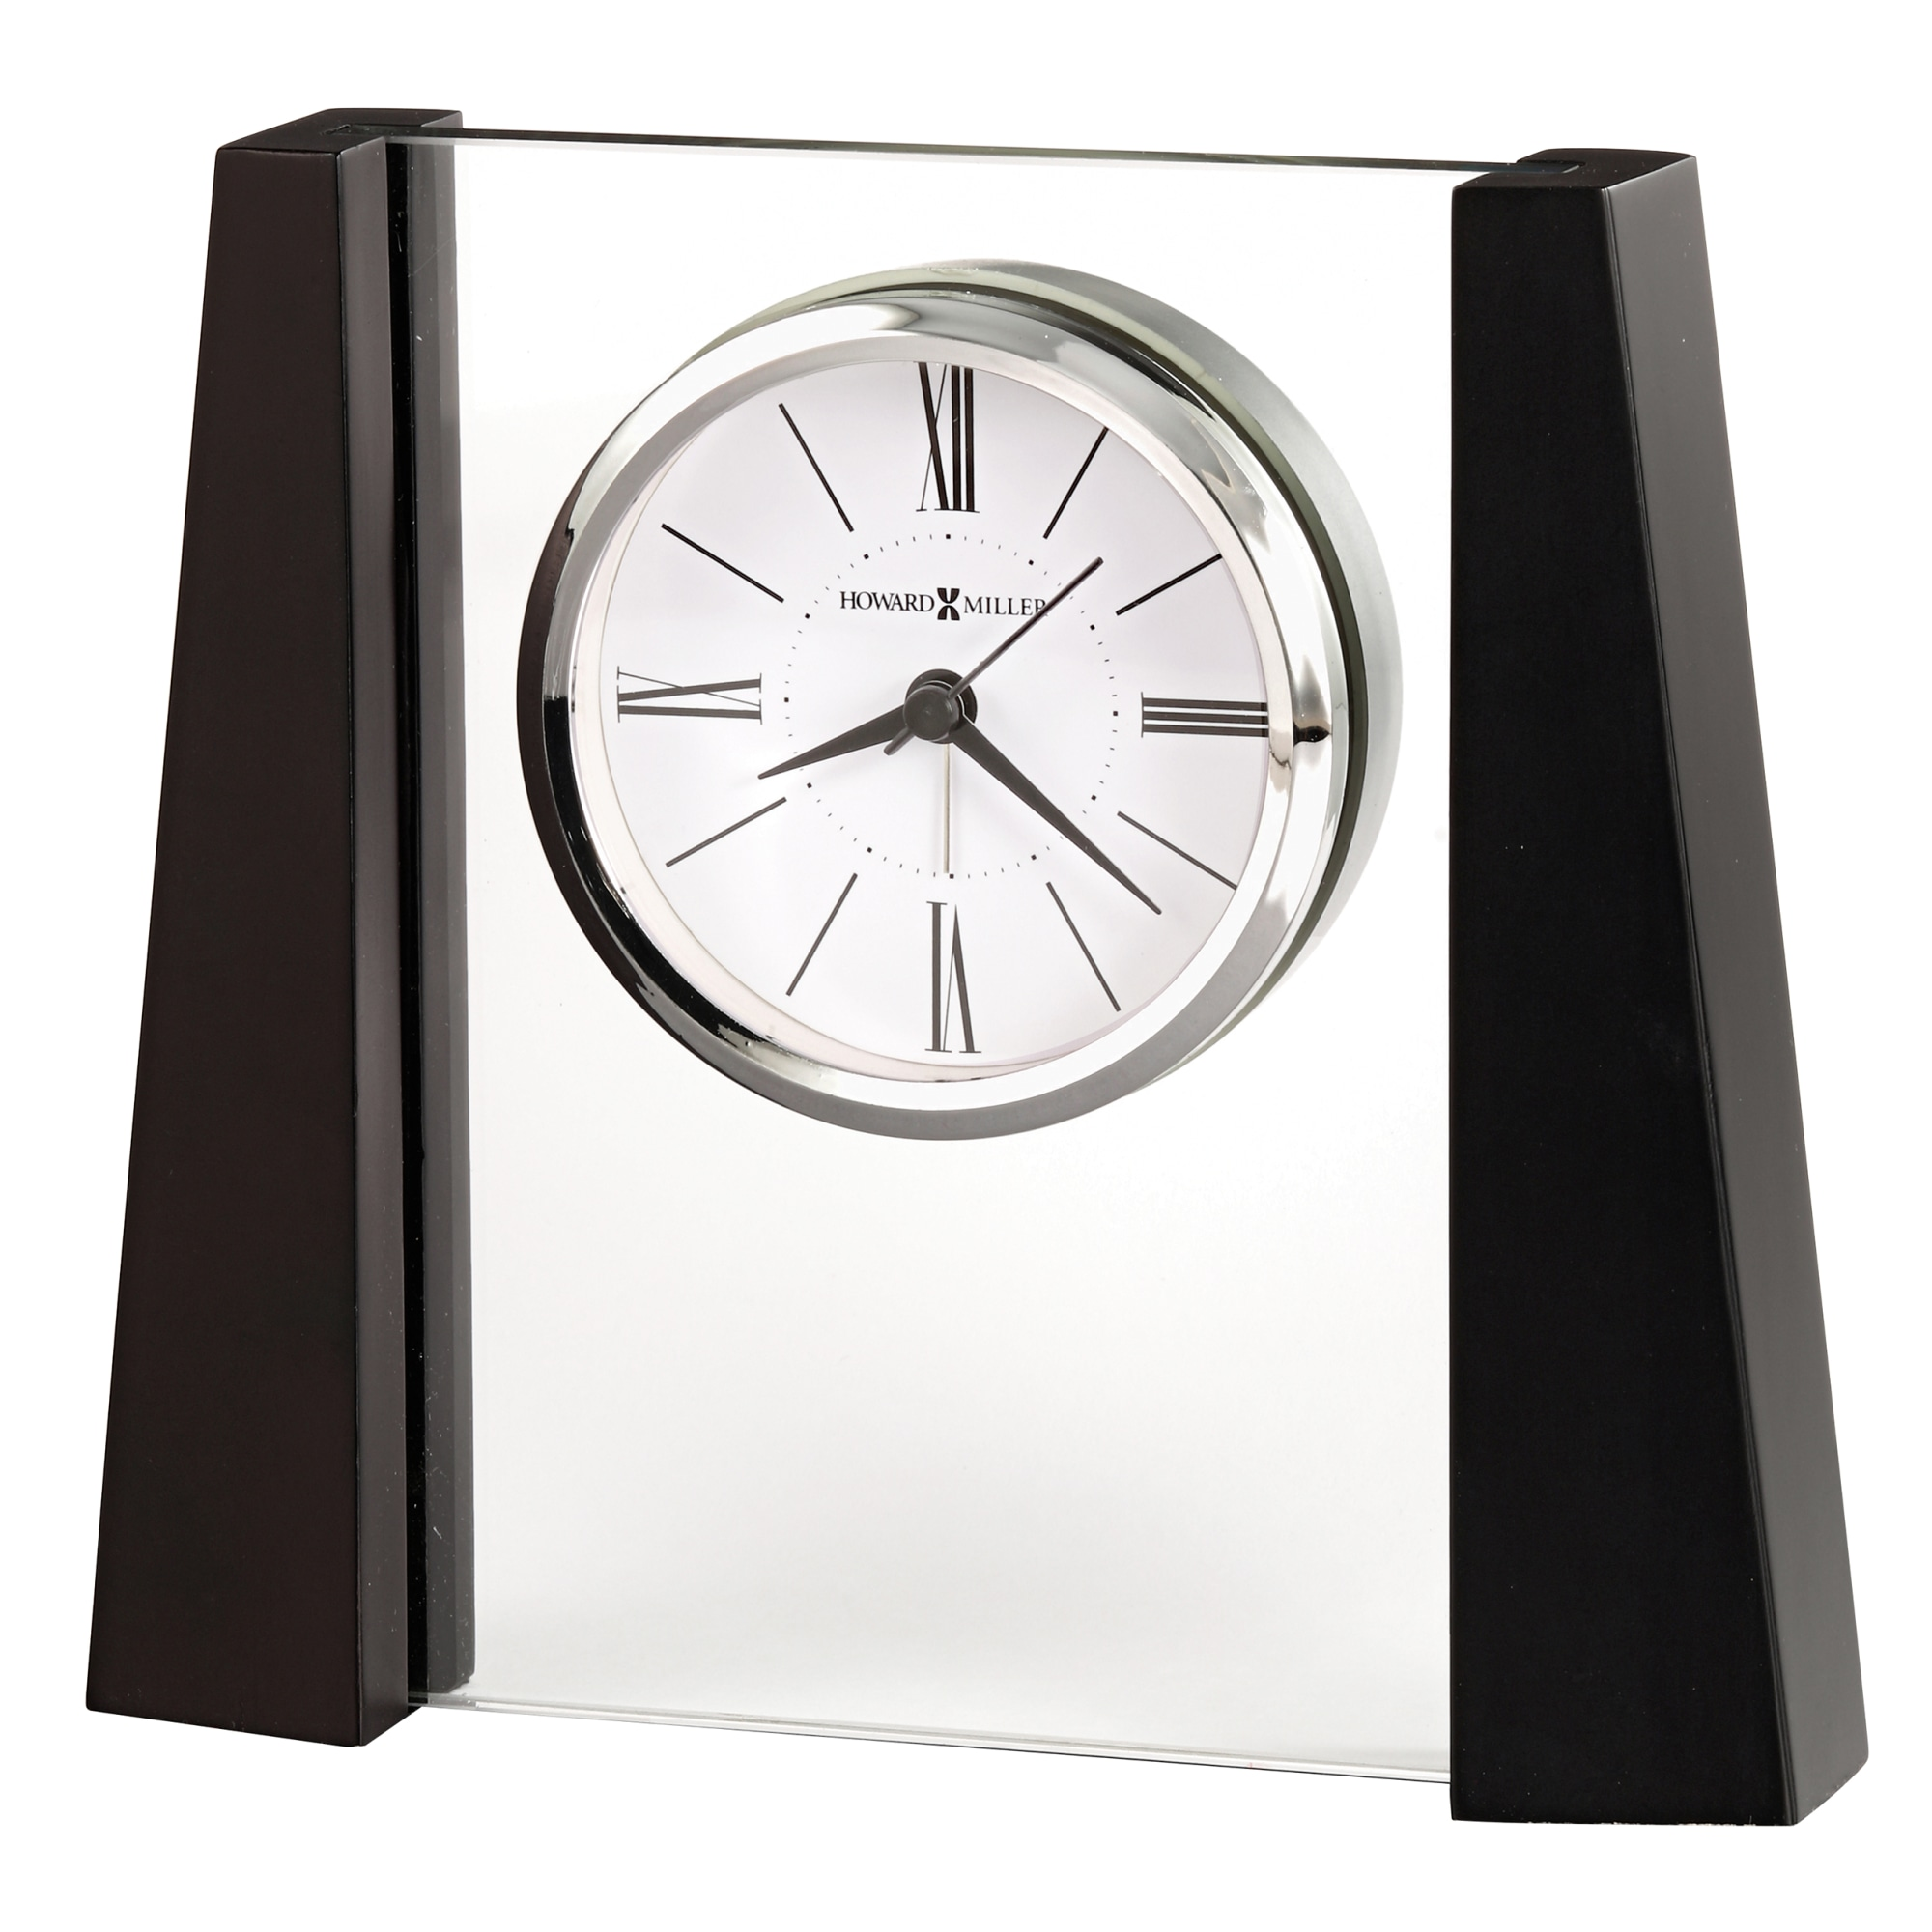 Image for Howard Miller Dixon Alarm Clock 645802 from Howard Miller Official Website